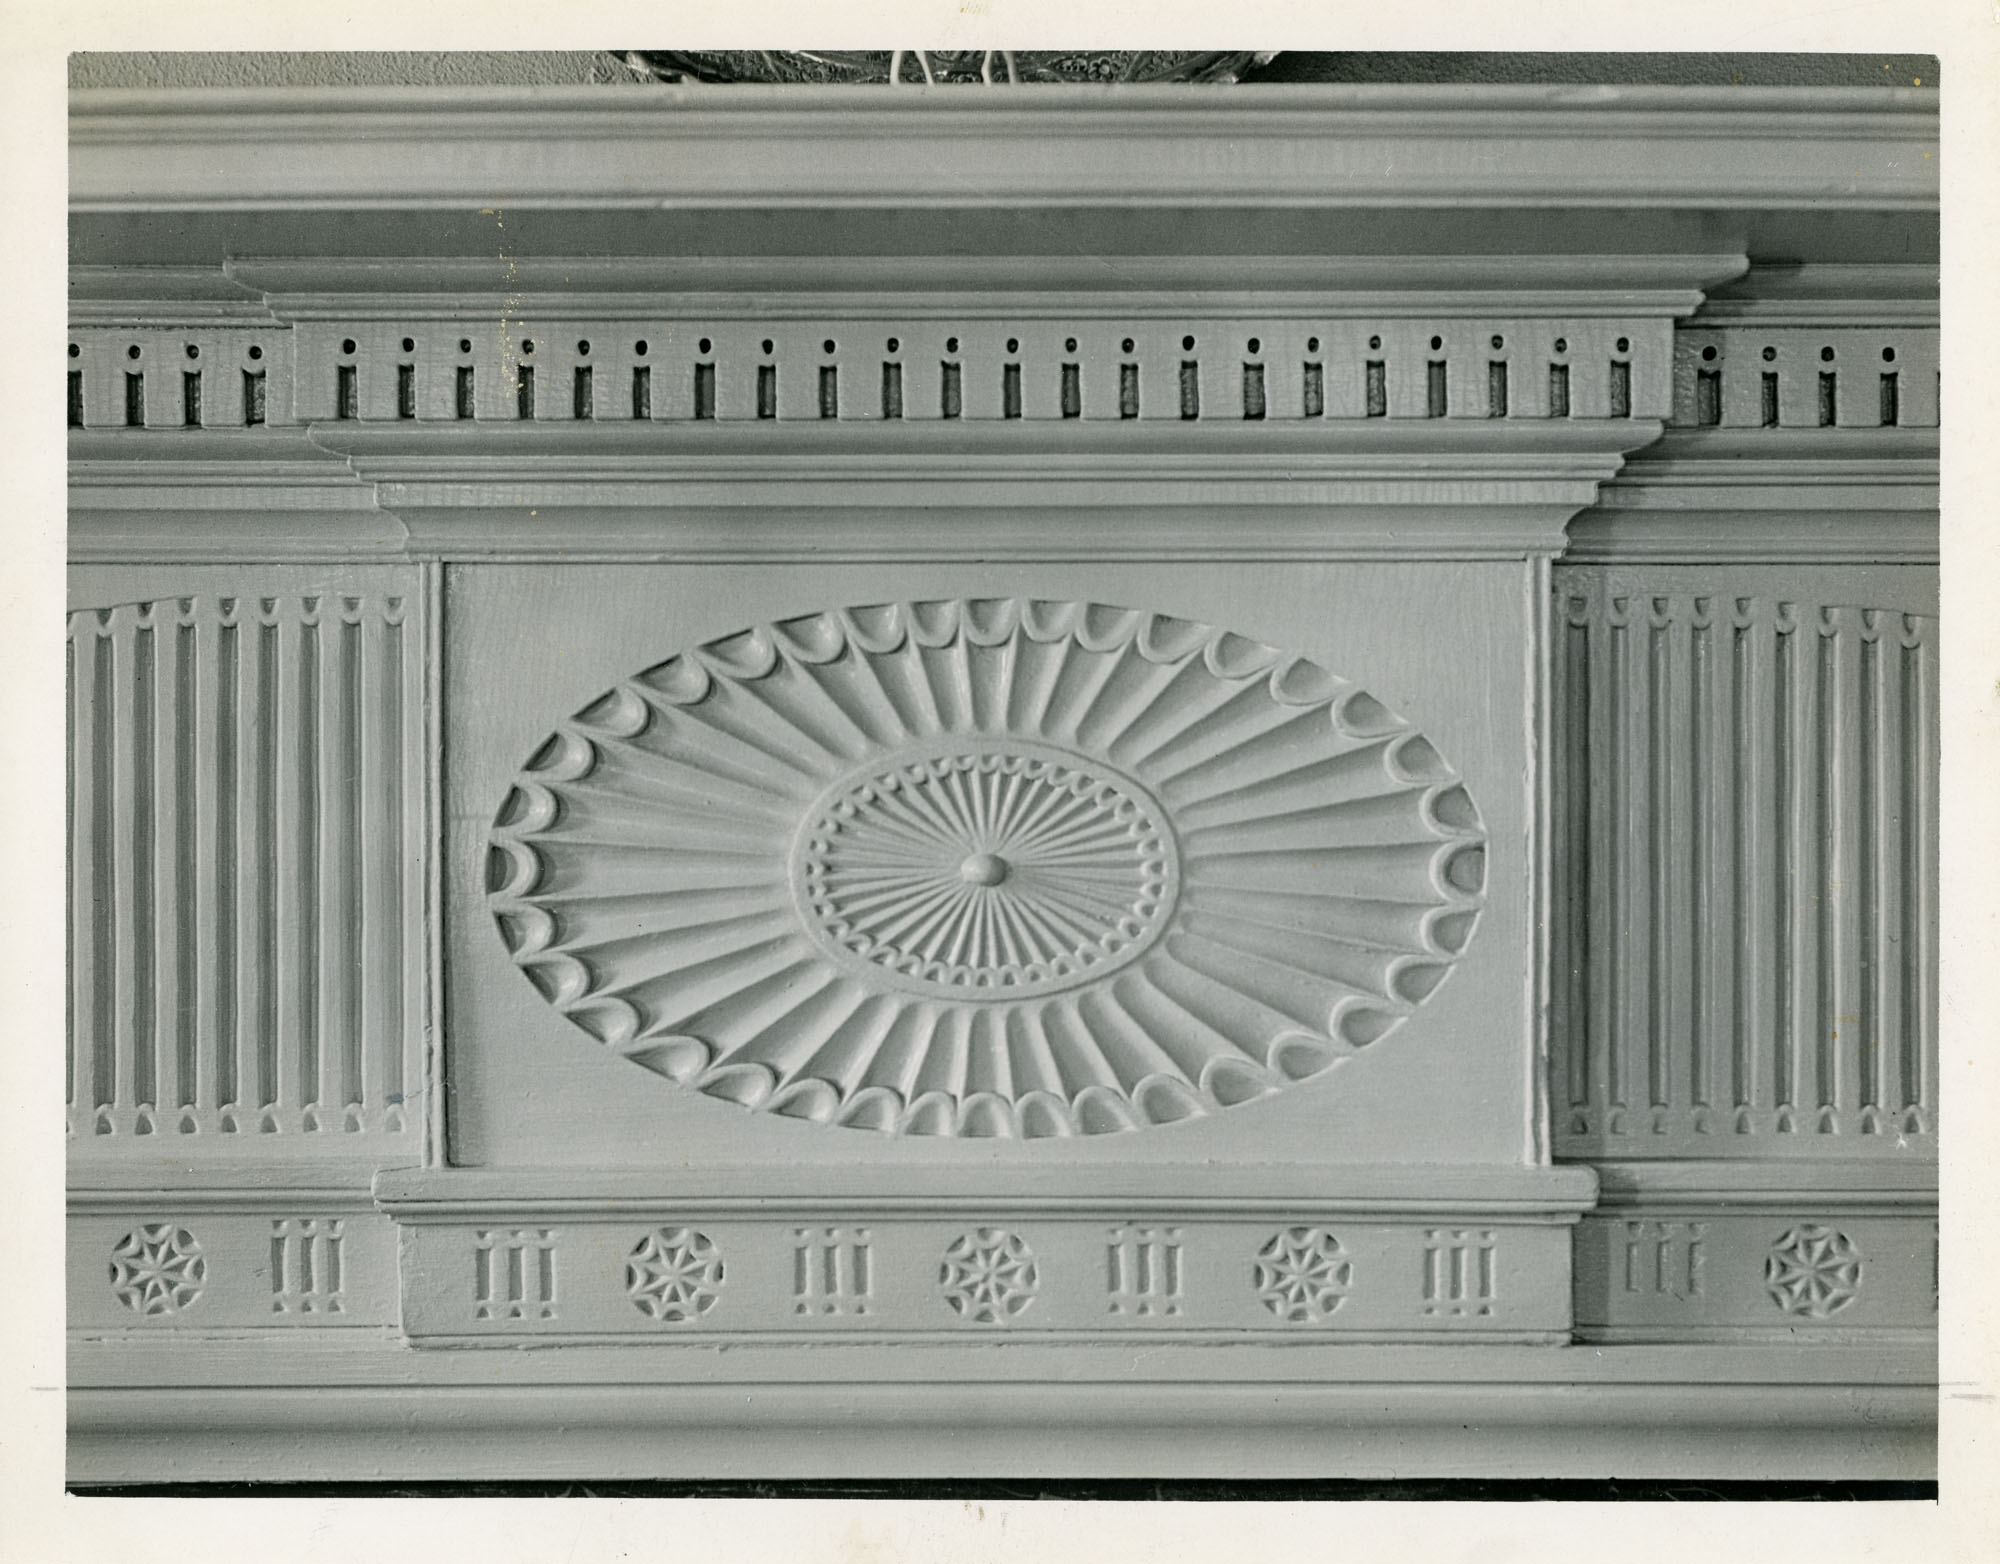 Detail of Center of Mantel, Drawing Room, Second Floor, Brewton-Sawter House